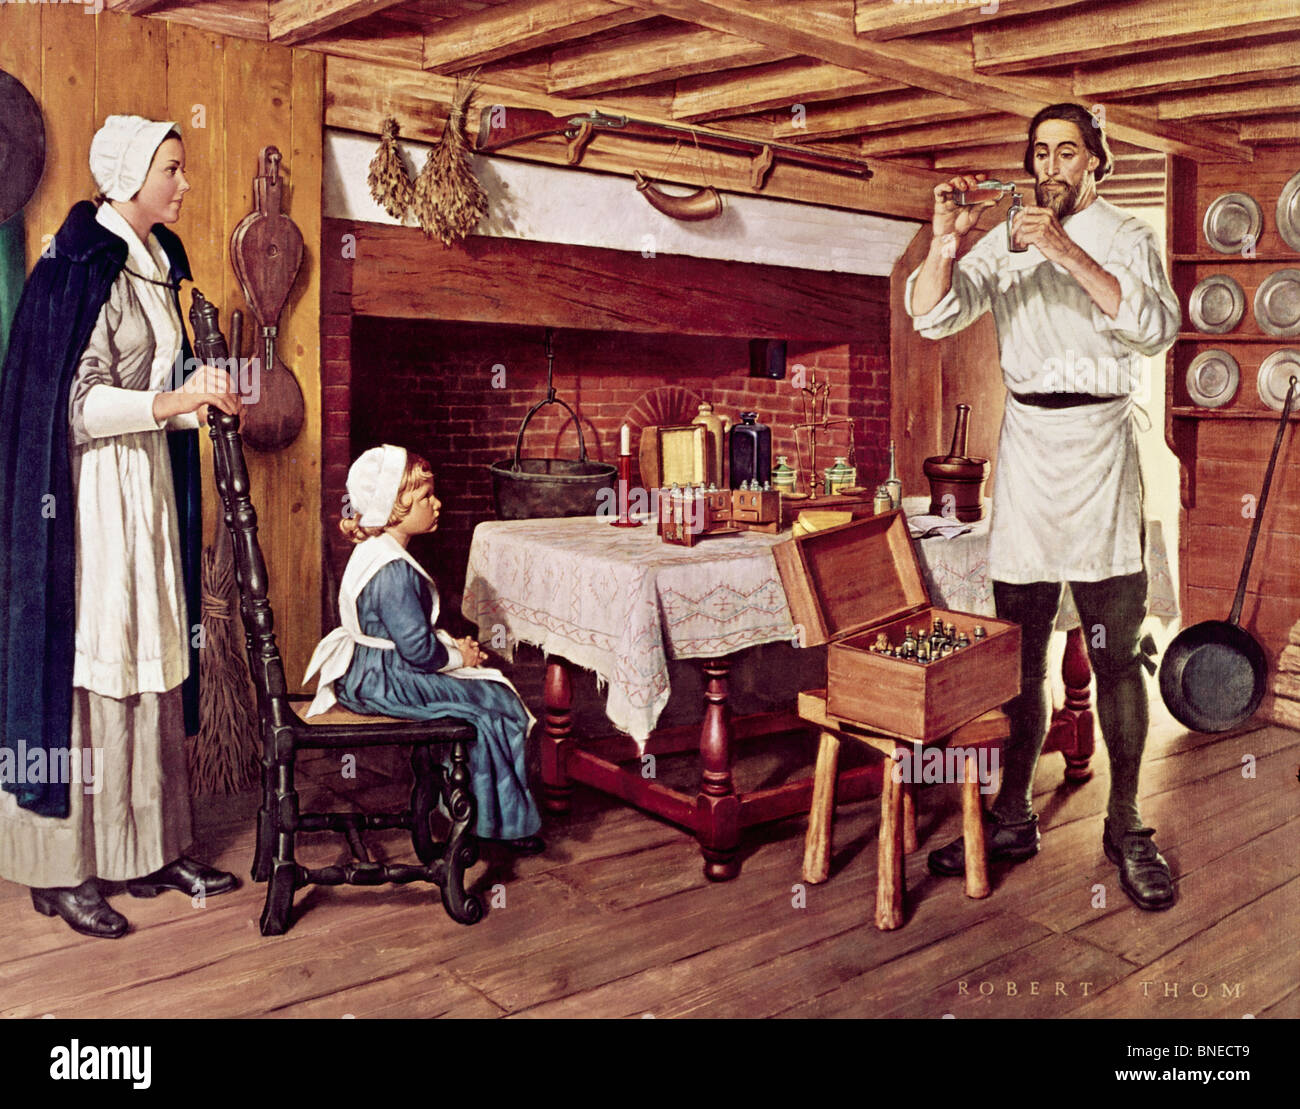 Governor Winthrop of the Colony of Massachusetts Performing Apothecary Services in his Home by Robert Thom Stock Photo